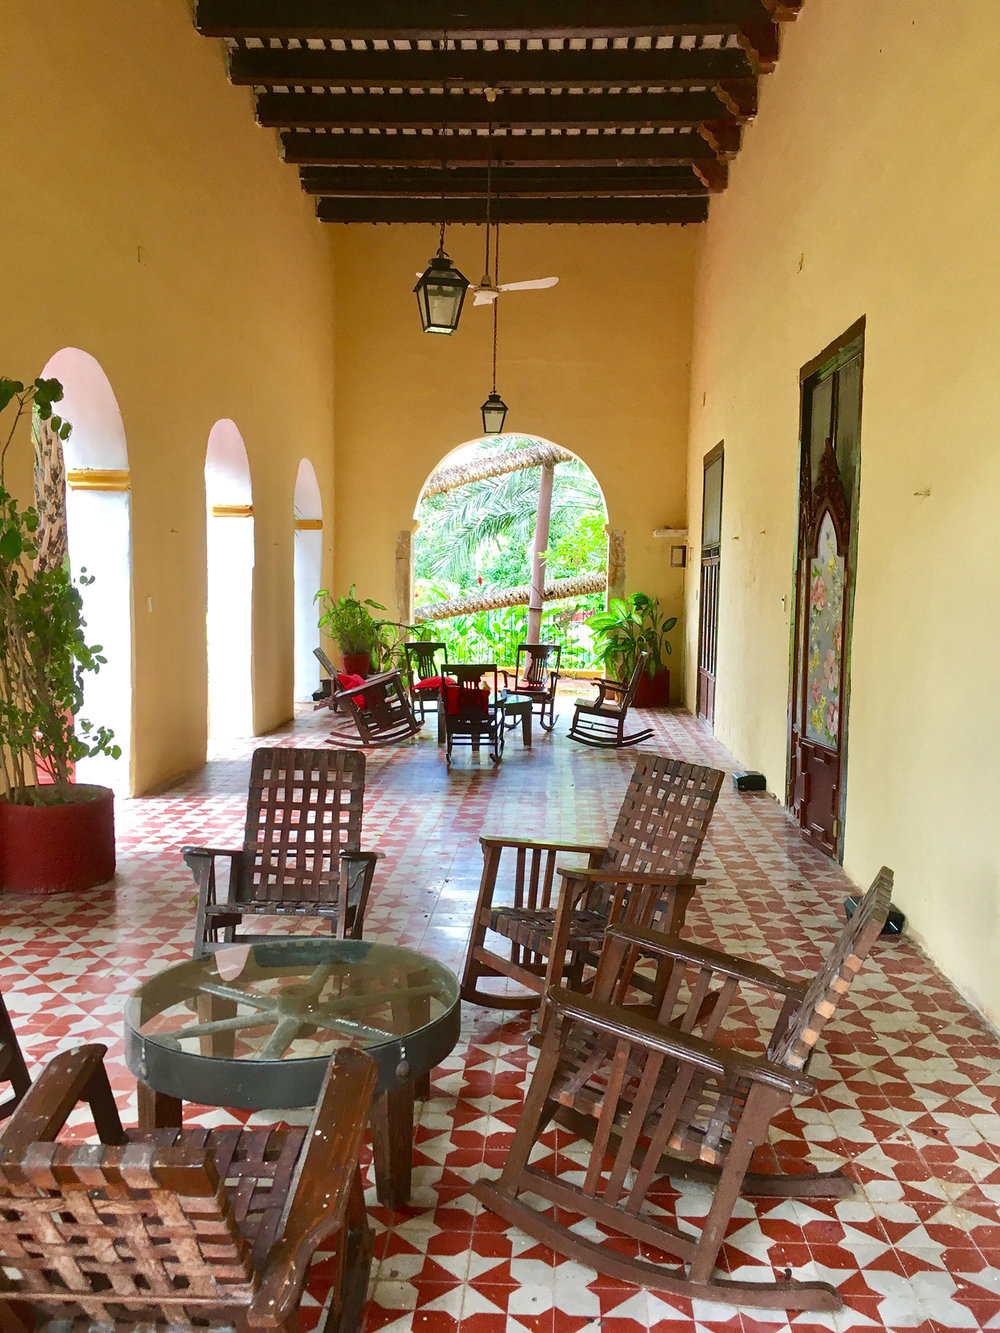 The veranda of the main house.